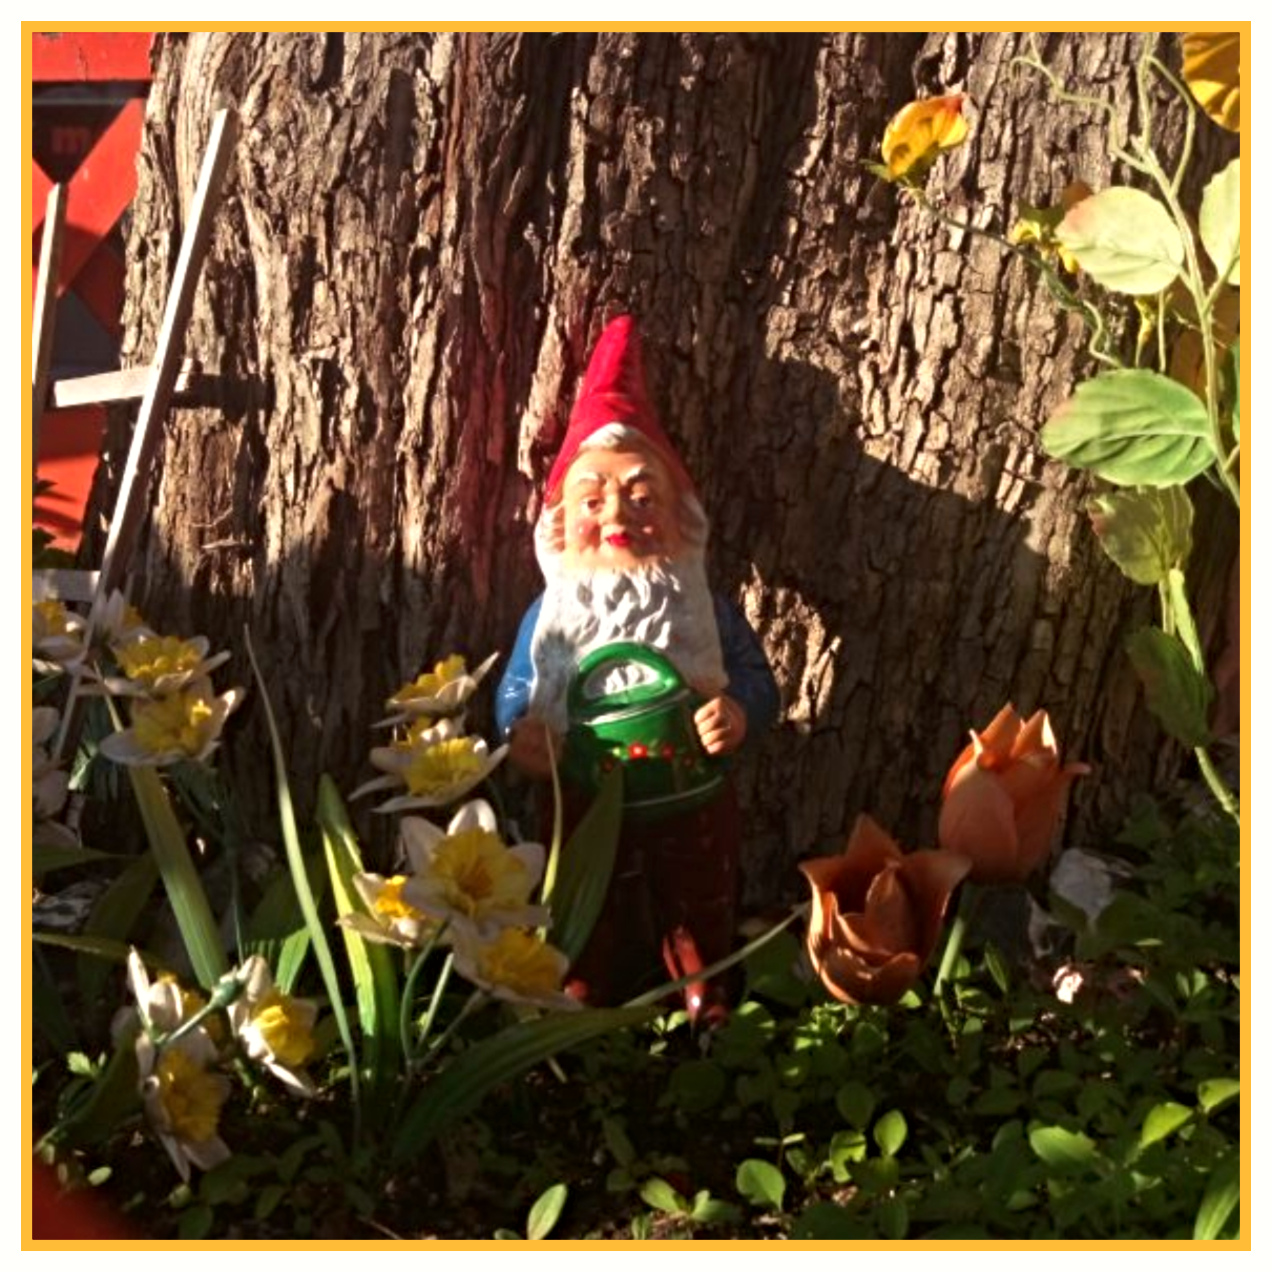 Another GDR Garden Gnome Vintage VEB orange